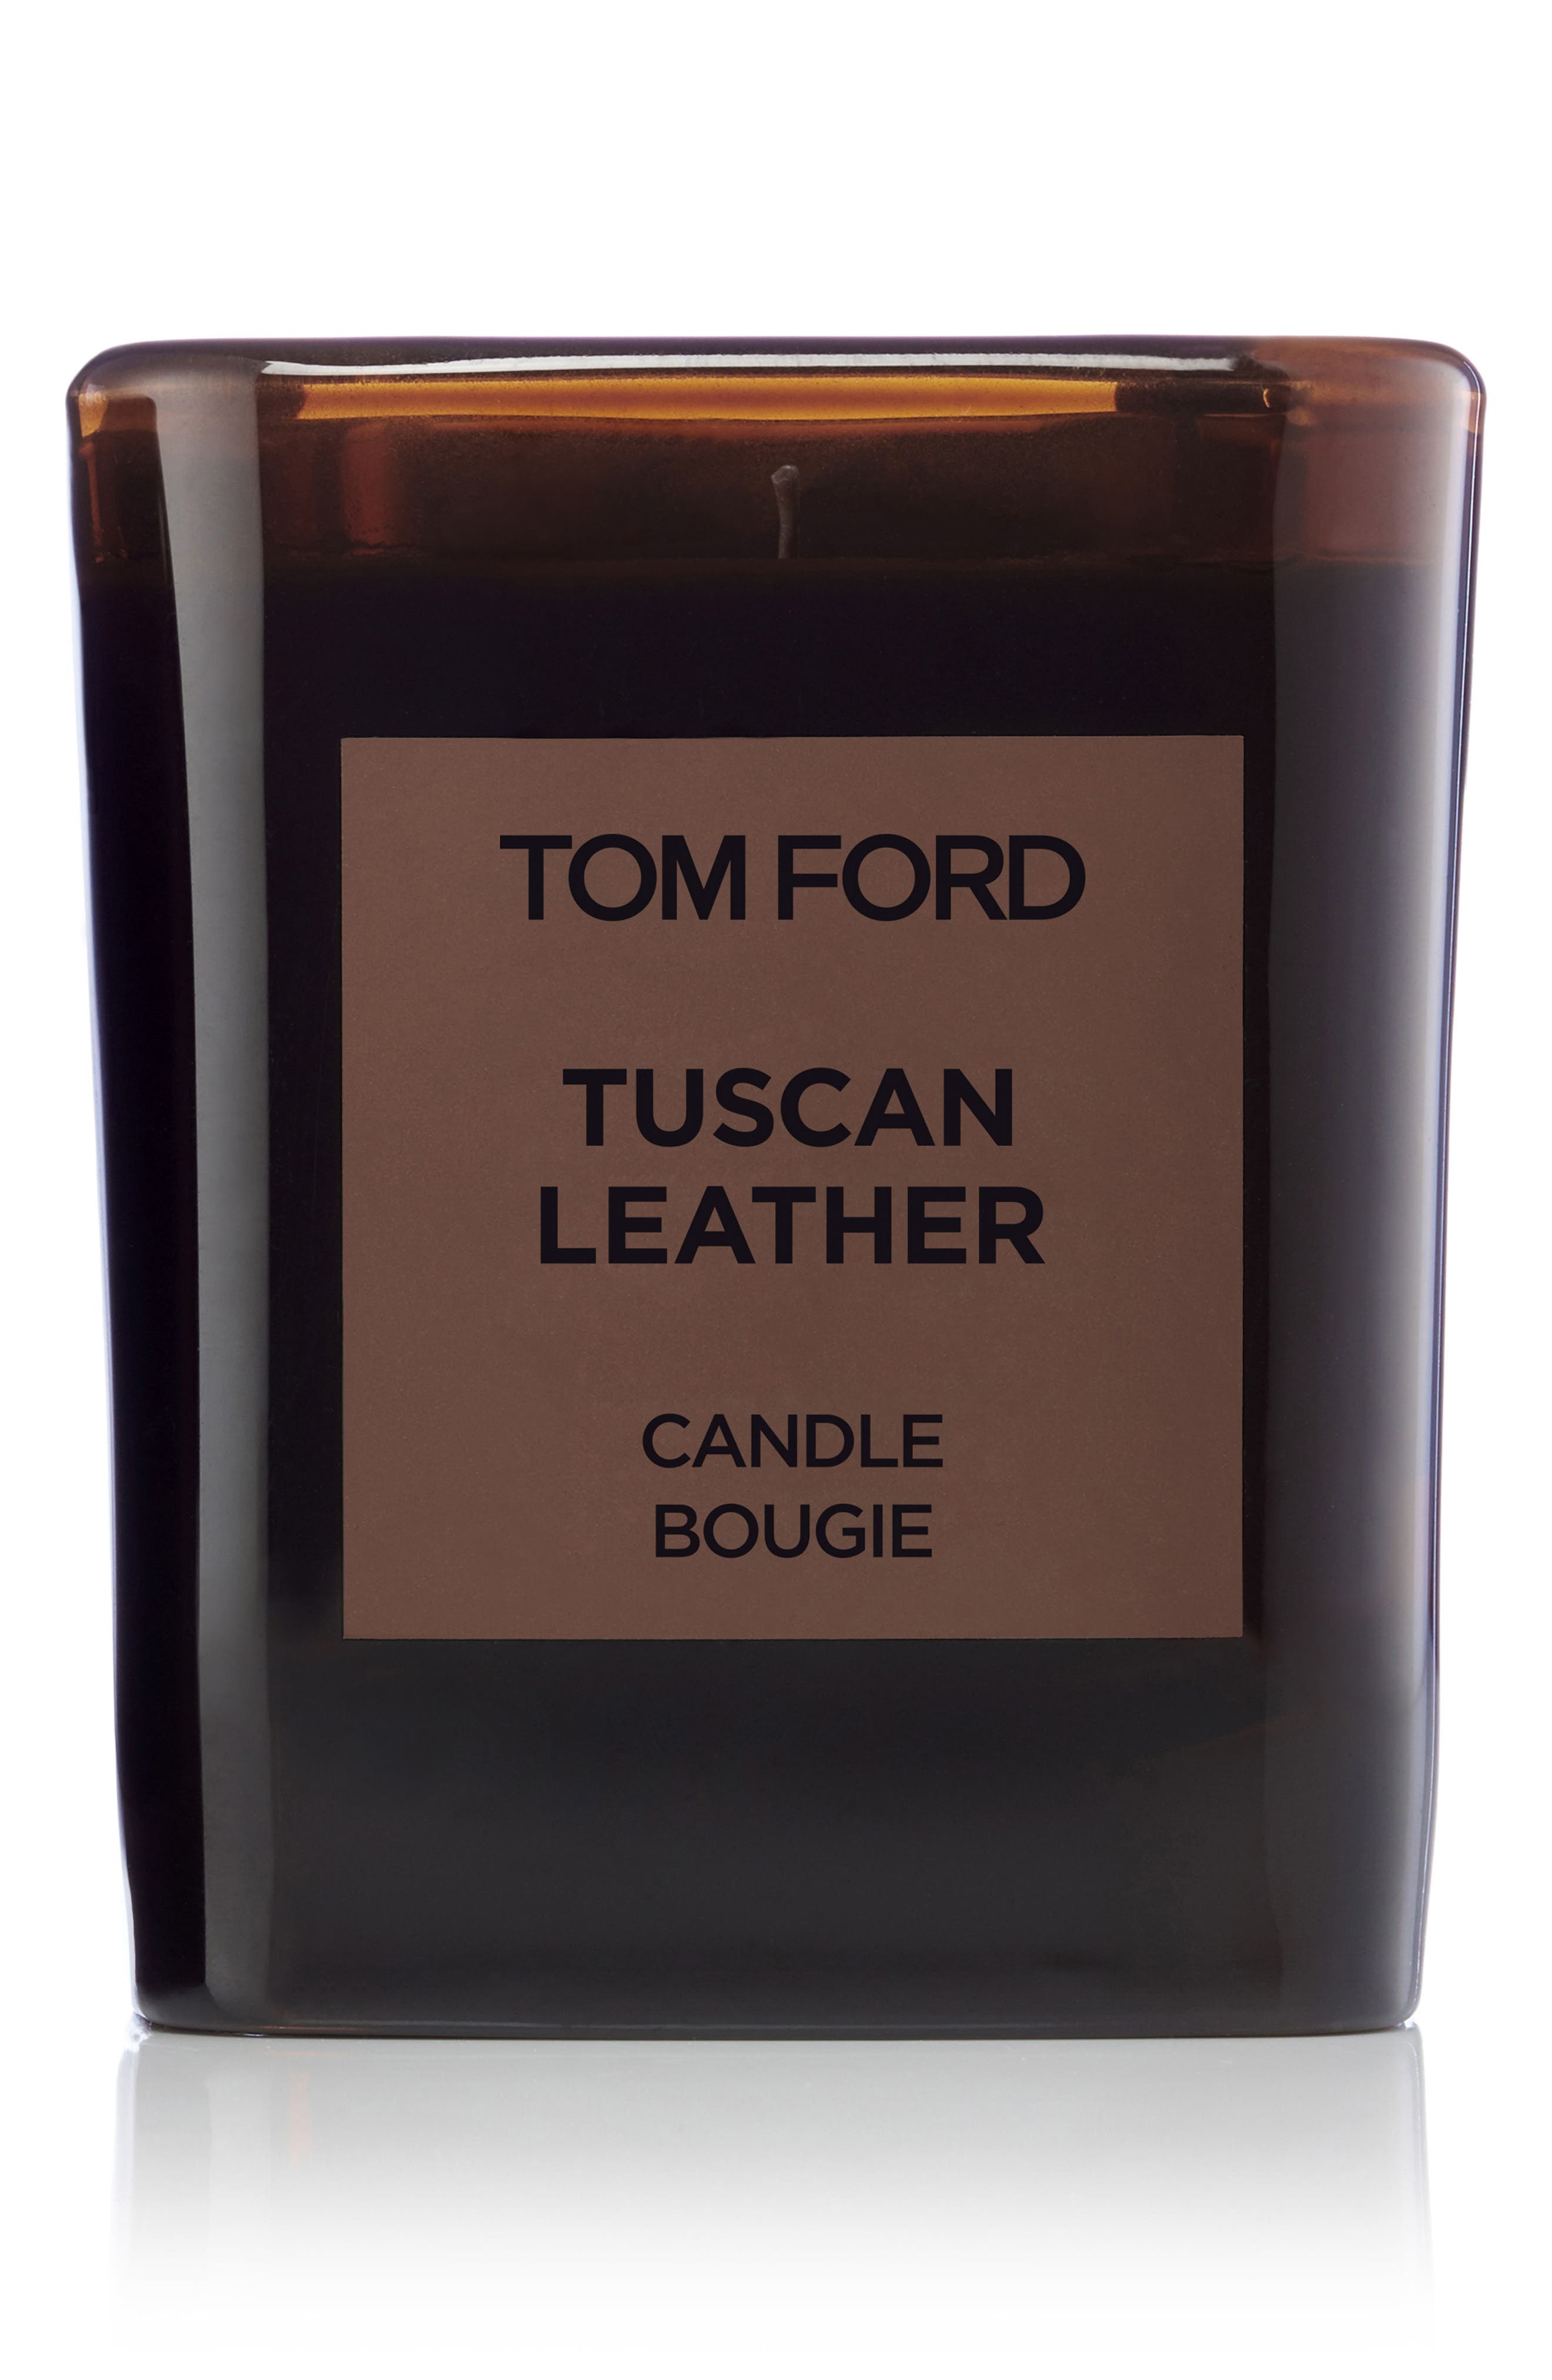 Tom Ford Tuscan Leather Candle